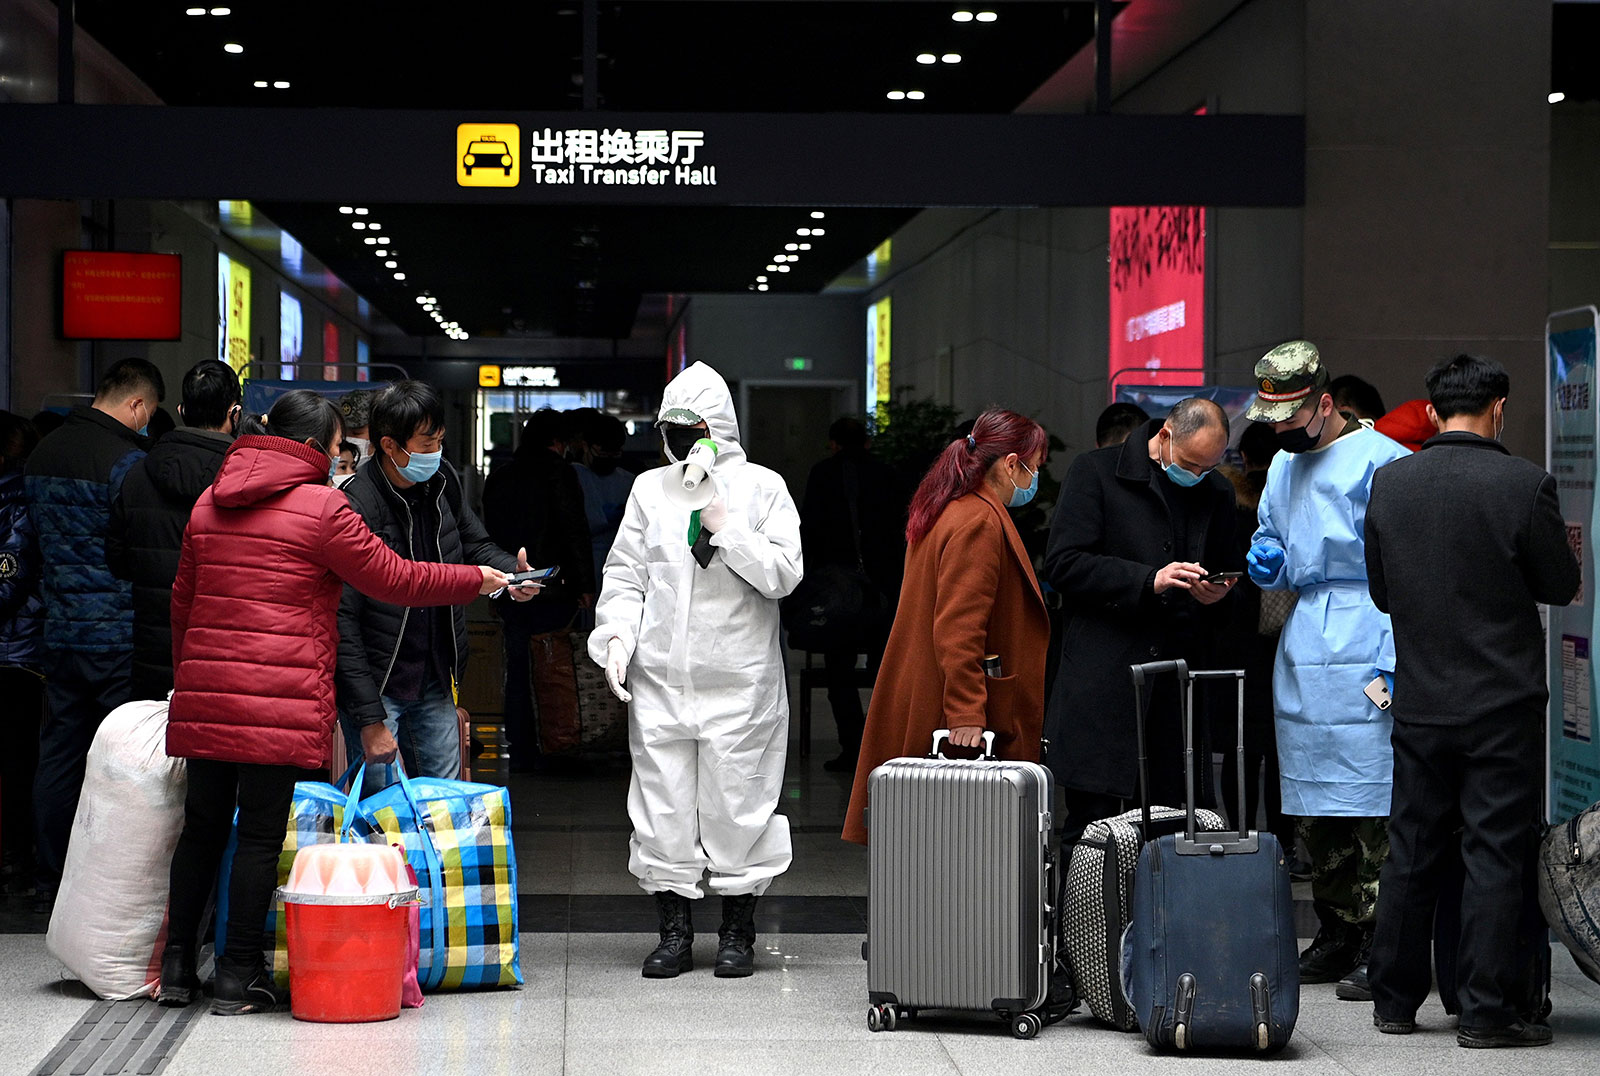 Passengers wearing face masks have their travel history checked as they arrive at the railway station in Hefei, China on March 4.